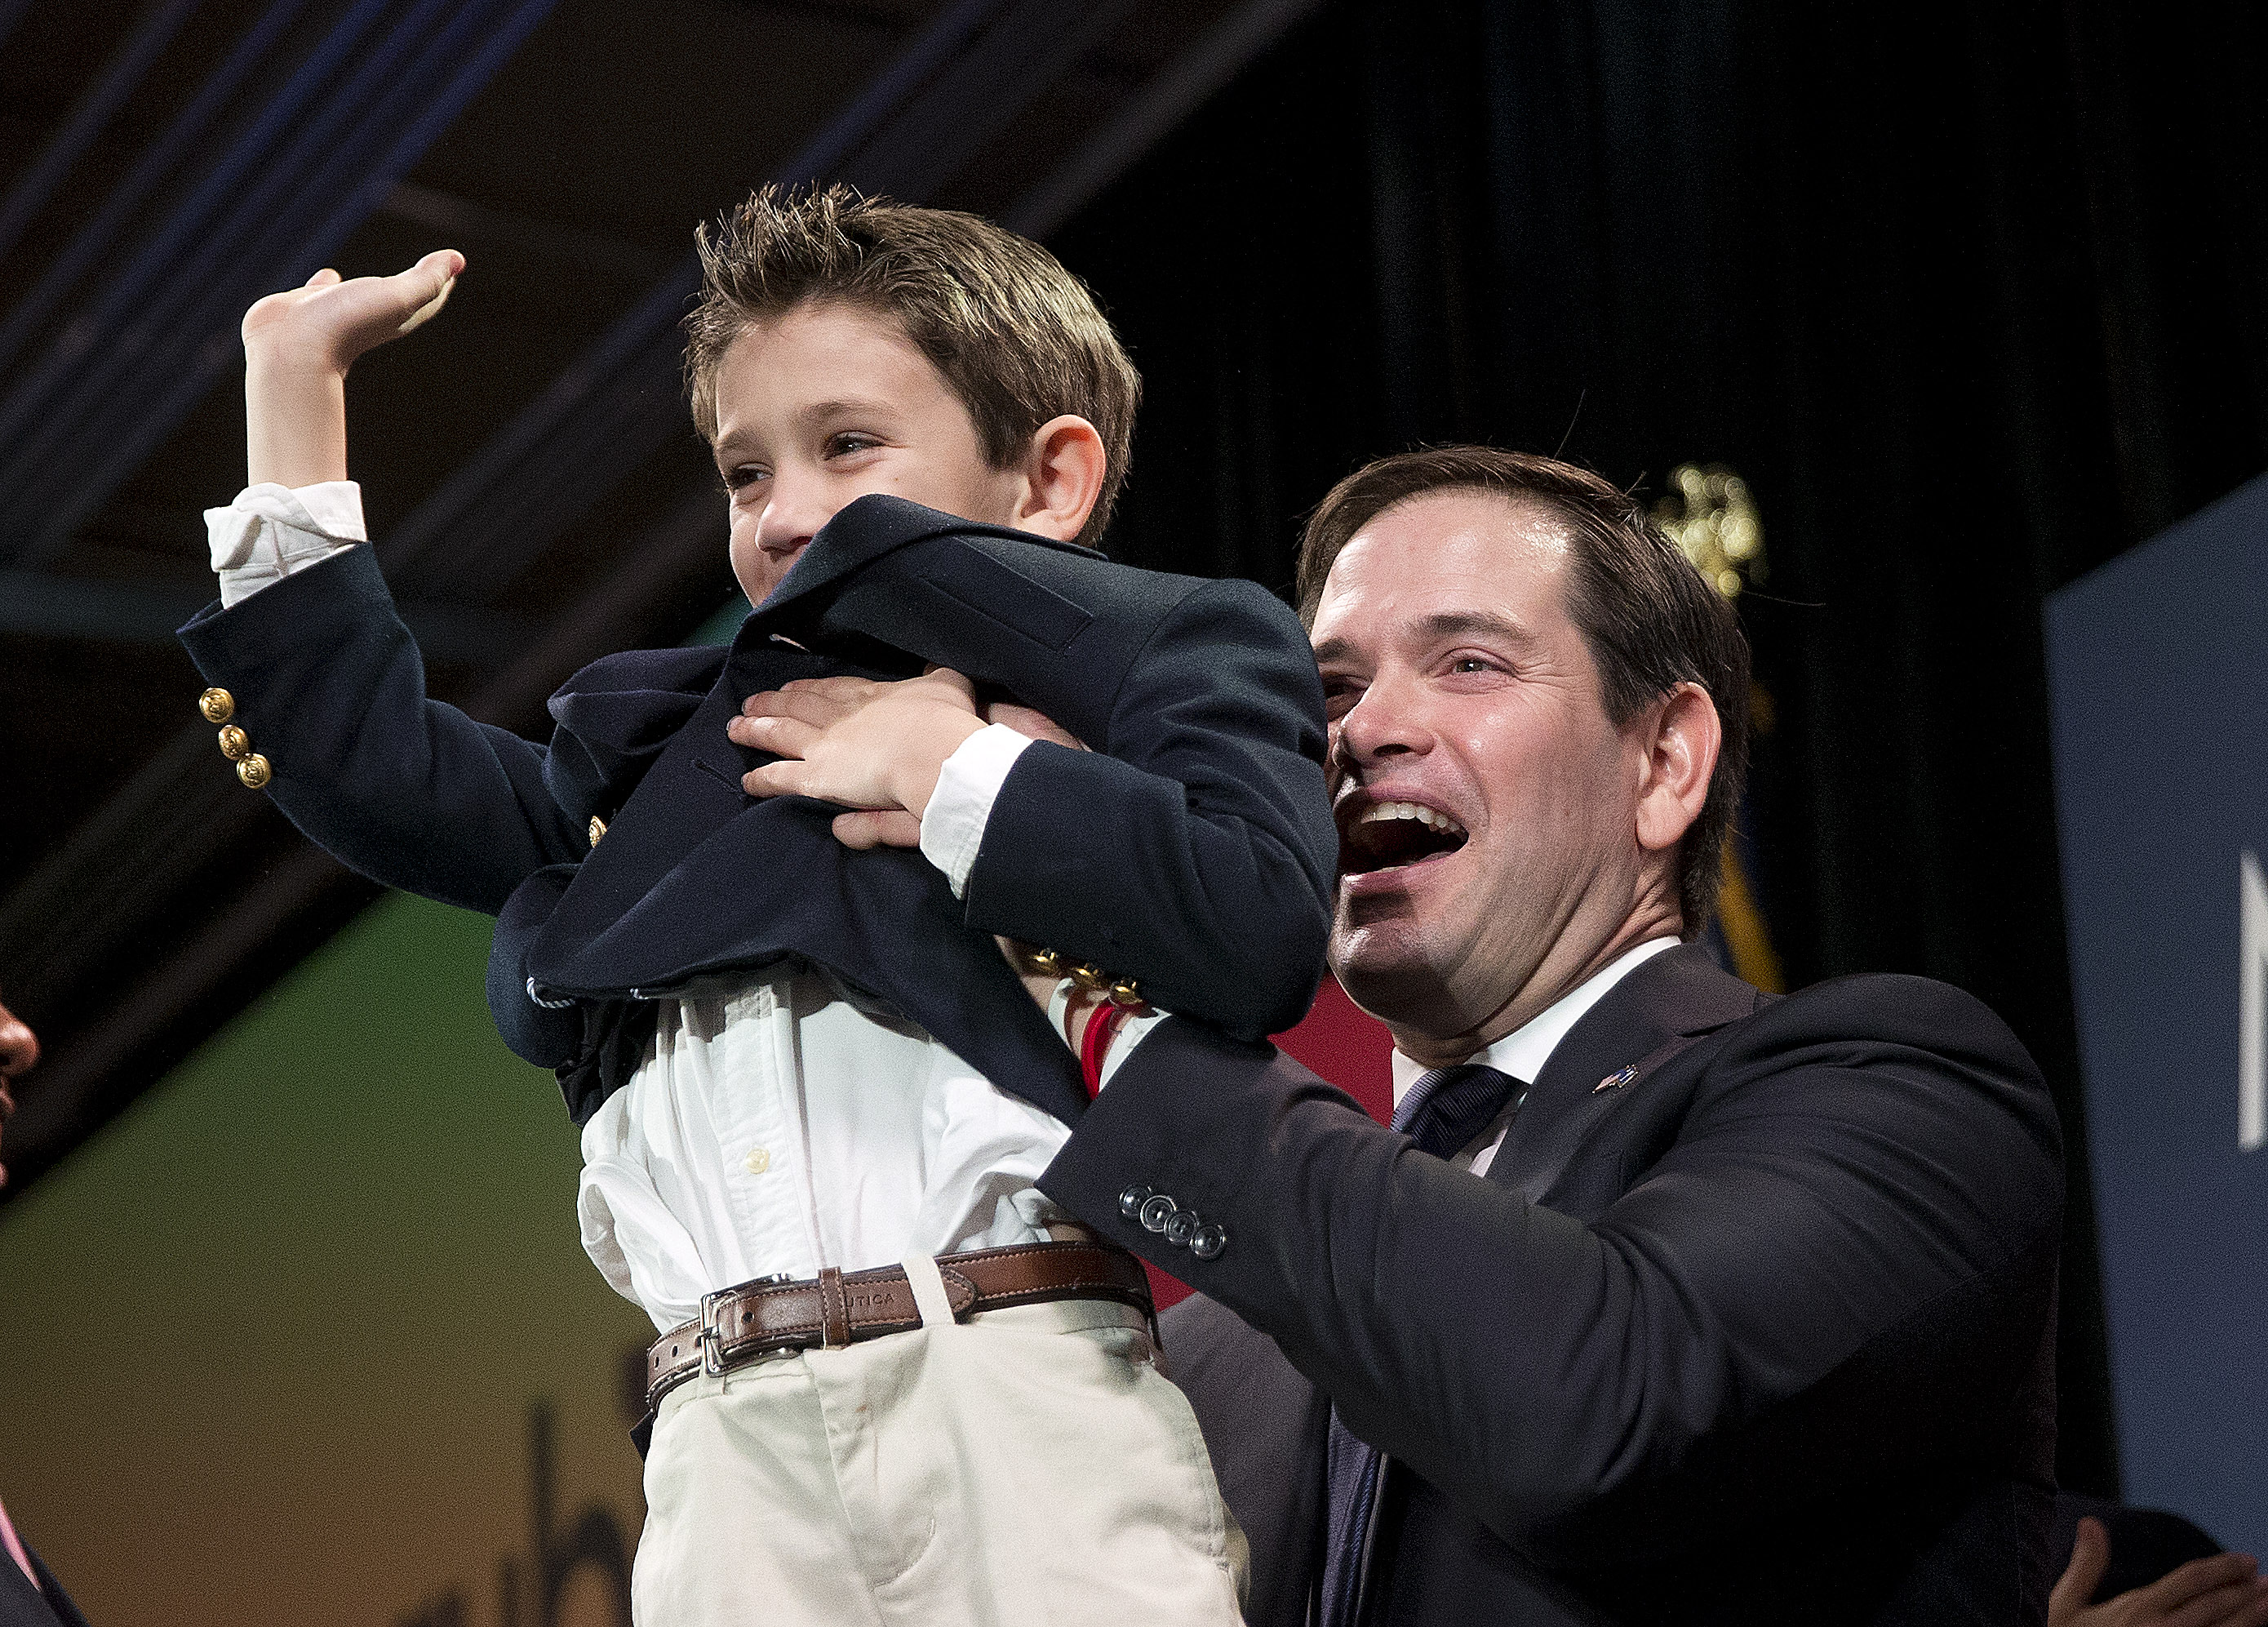 Republican presidential candidate Sen. Marco Rubio, R-Fla, lifts up his son, Dominick, after speaking during an election-night rally Saturday, Feb. 20, 2016, in Columbia, S.C. (AP Photo/John Bazemore)